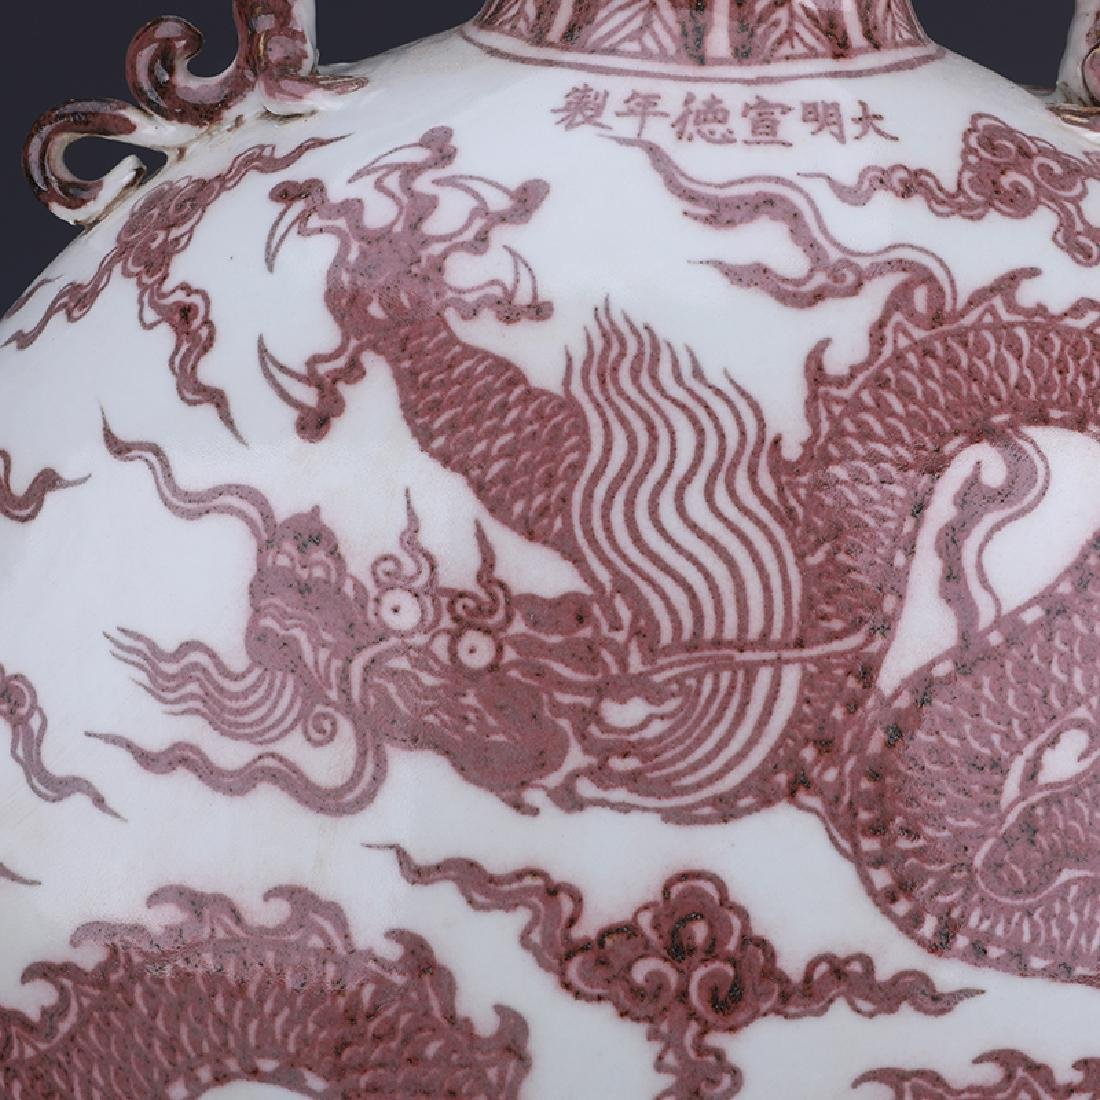 Chinese Red And White Dragon Porcelain Vase - 6